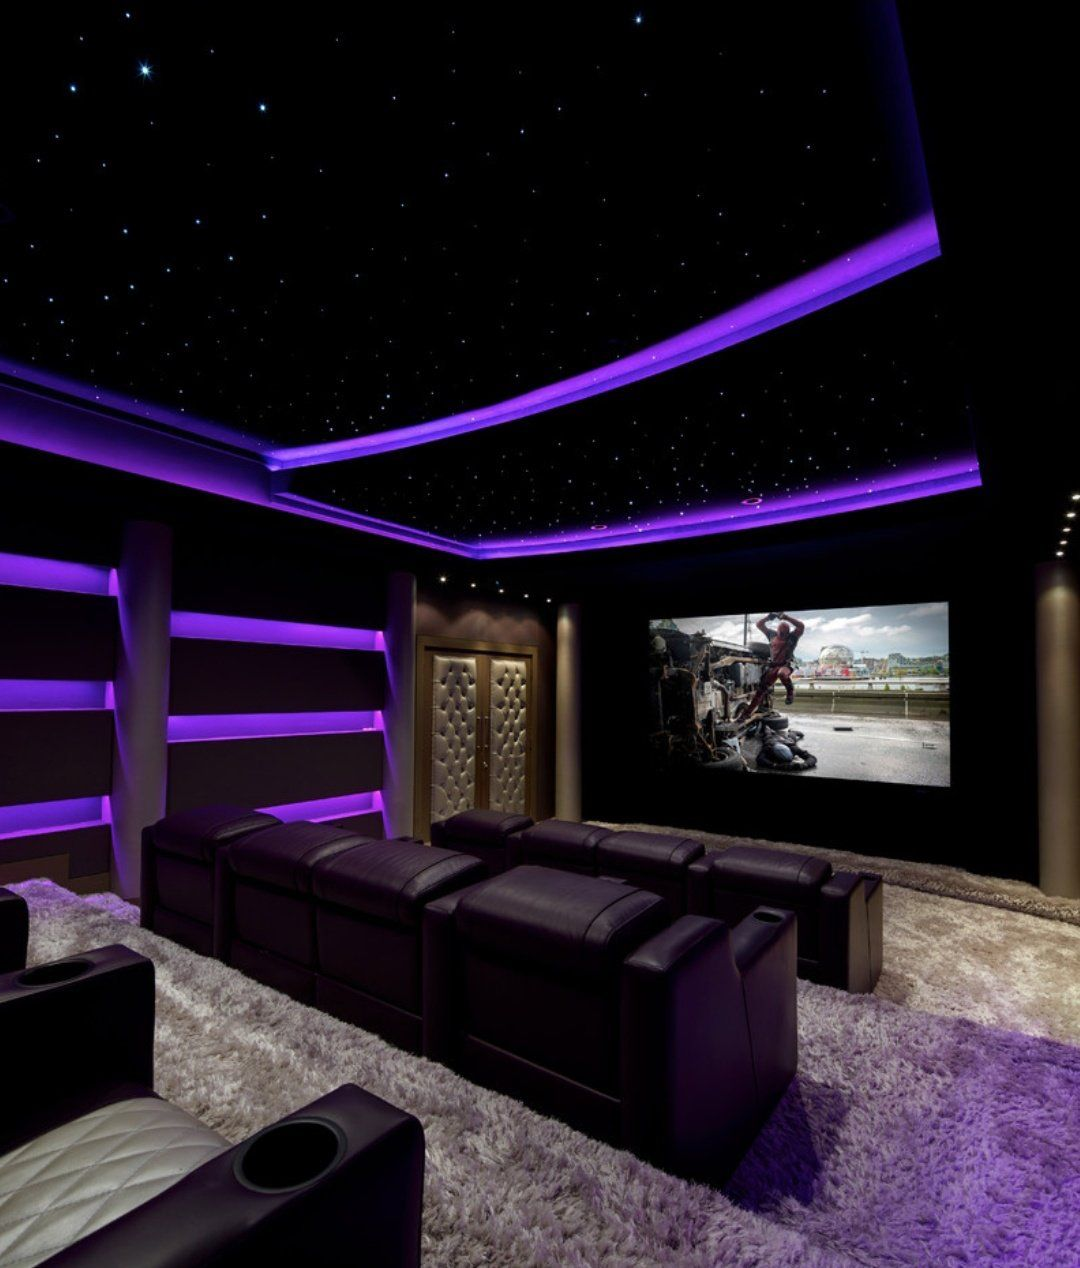 Home Theater Interiors Small Home Theater Room Design: Home Cinema Room Image By Chinyere On Future